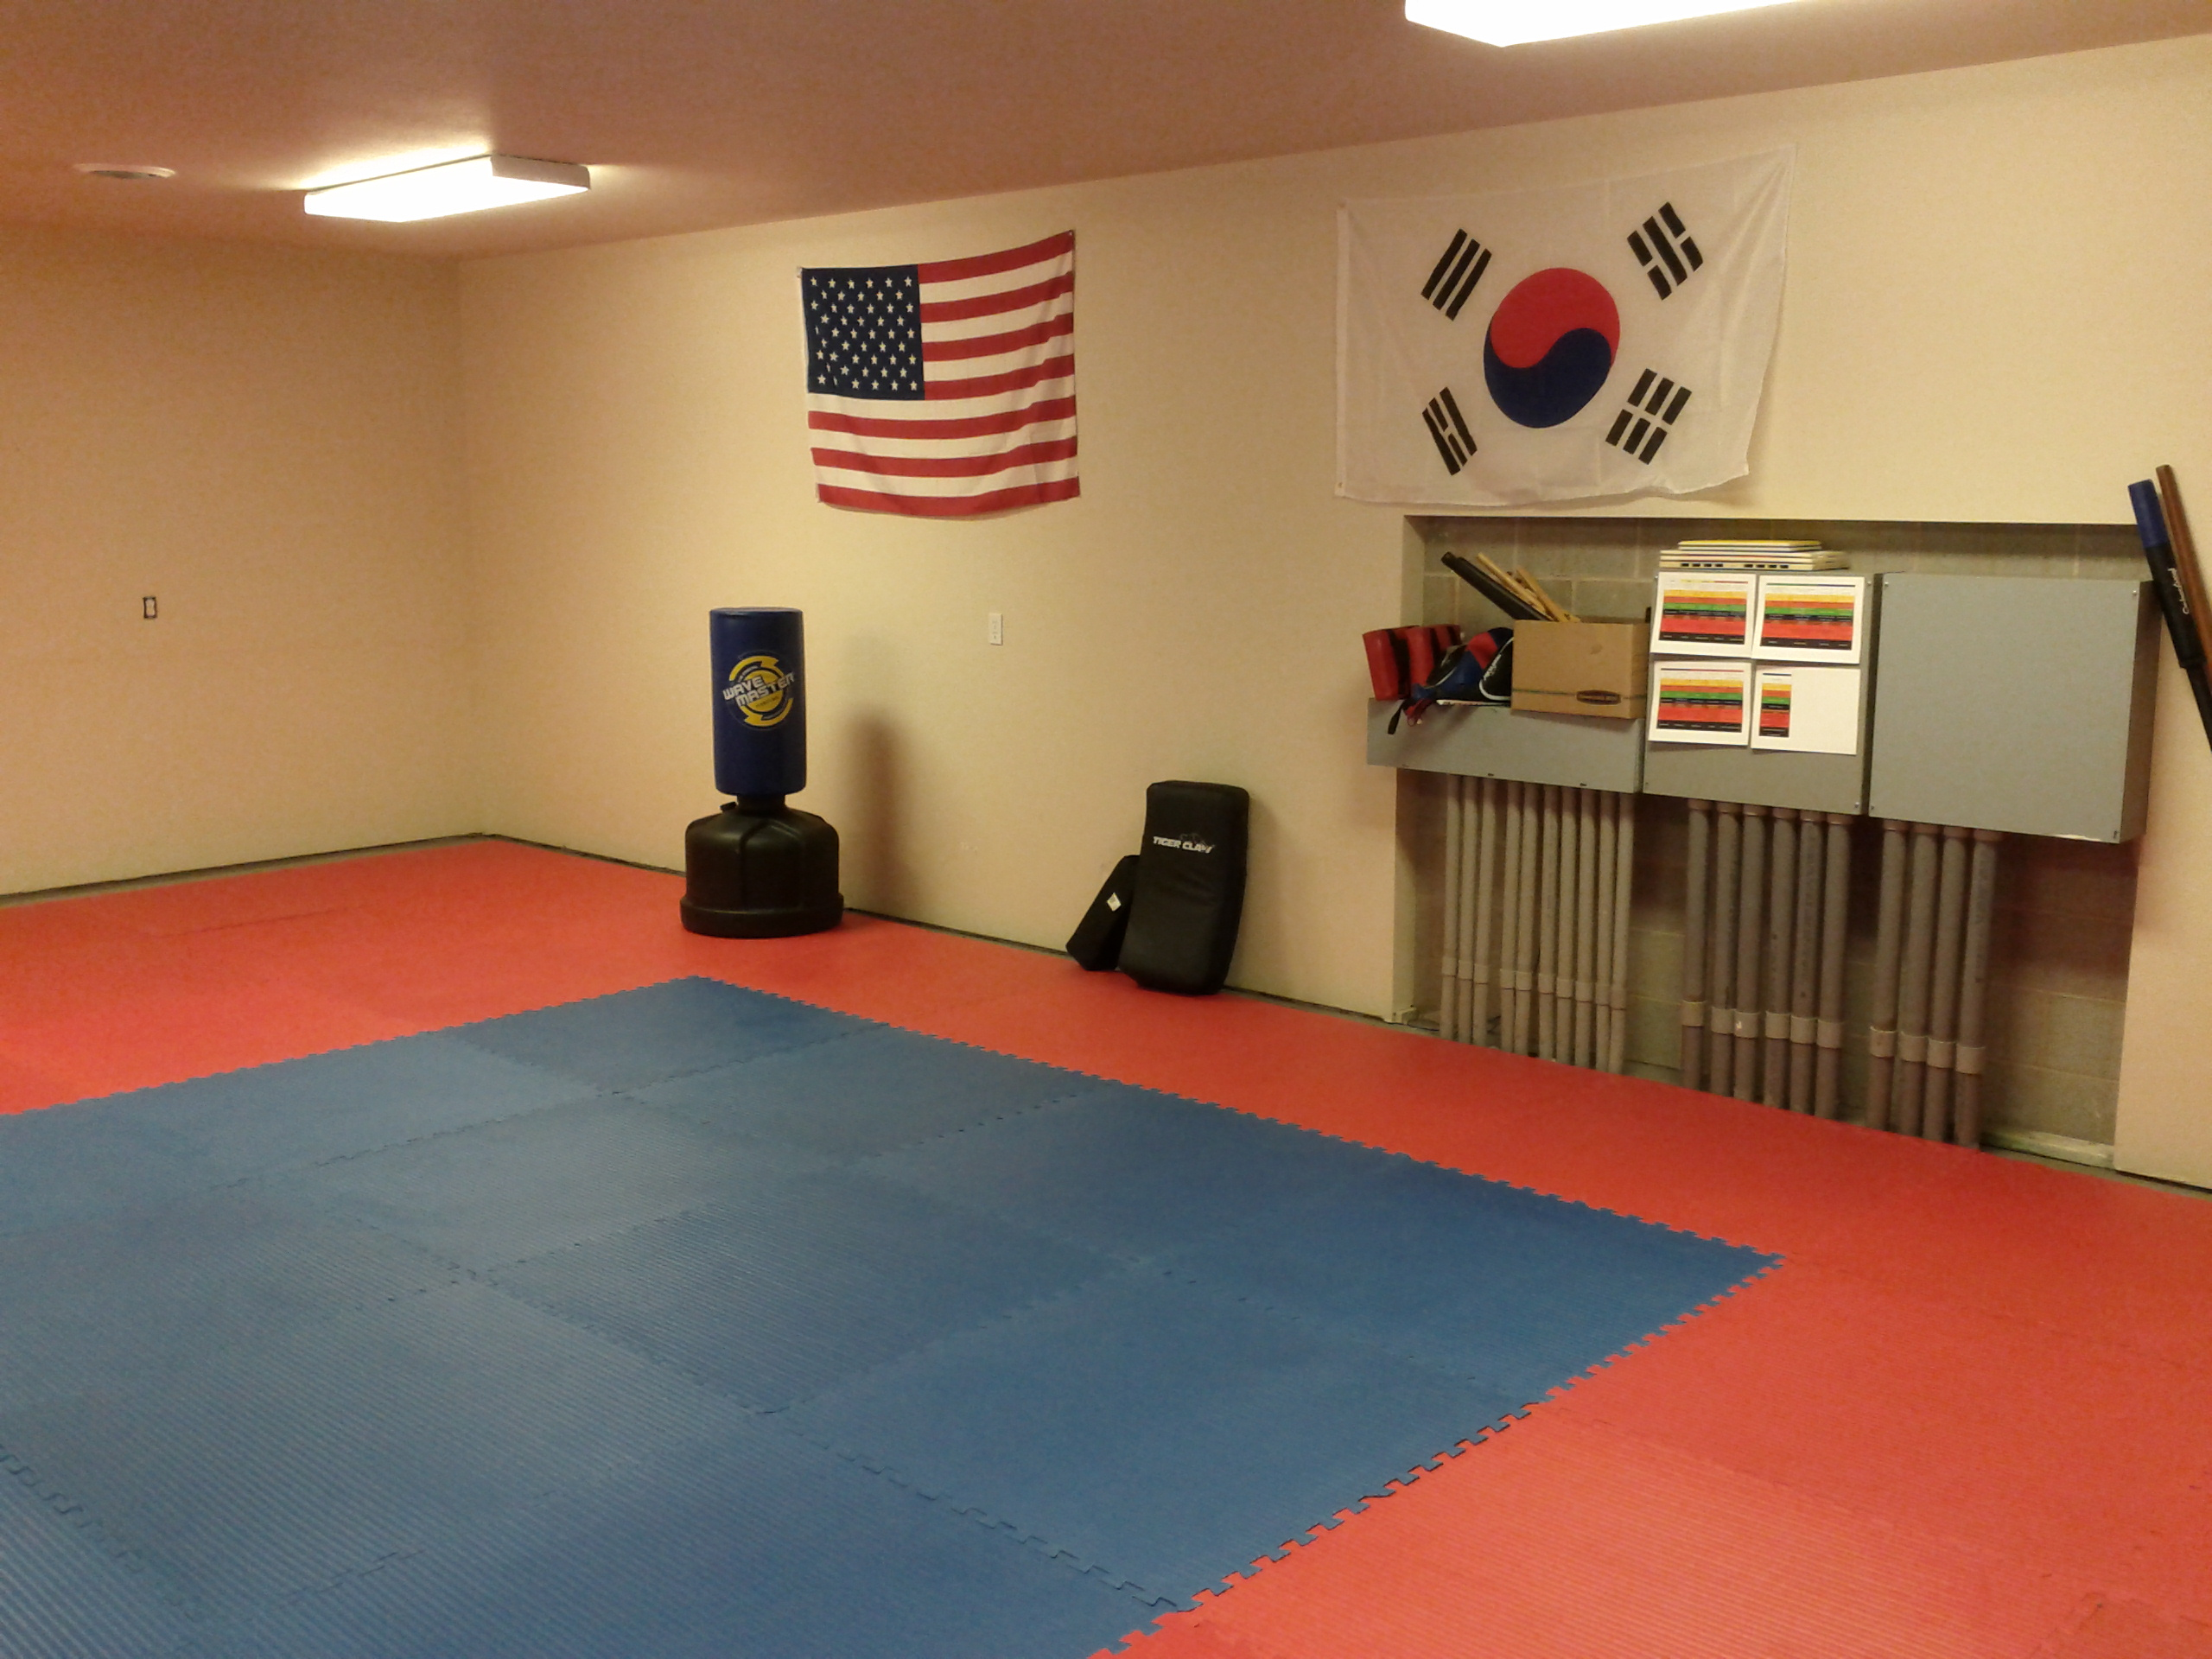 Picture of Taekwondo Dojang